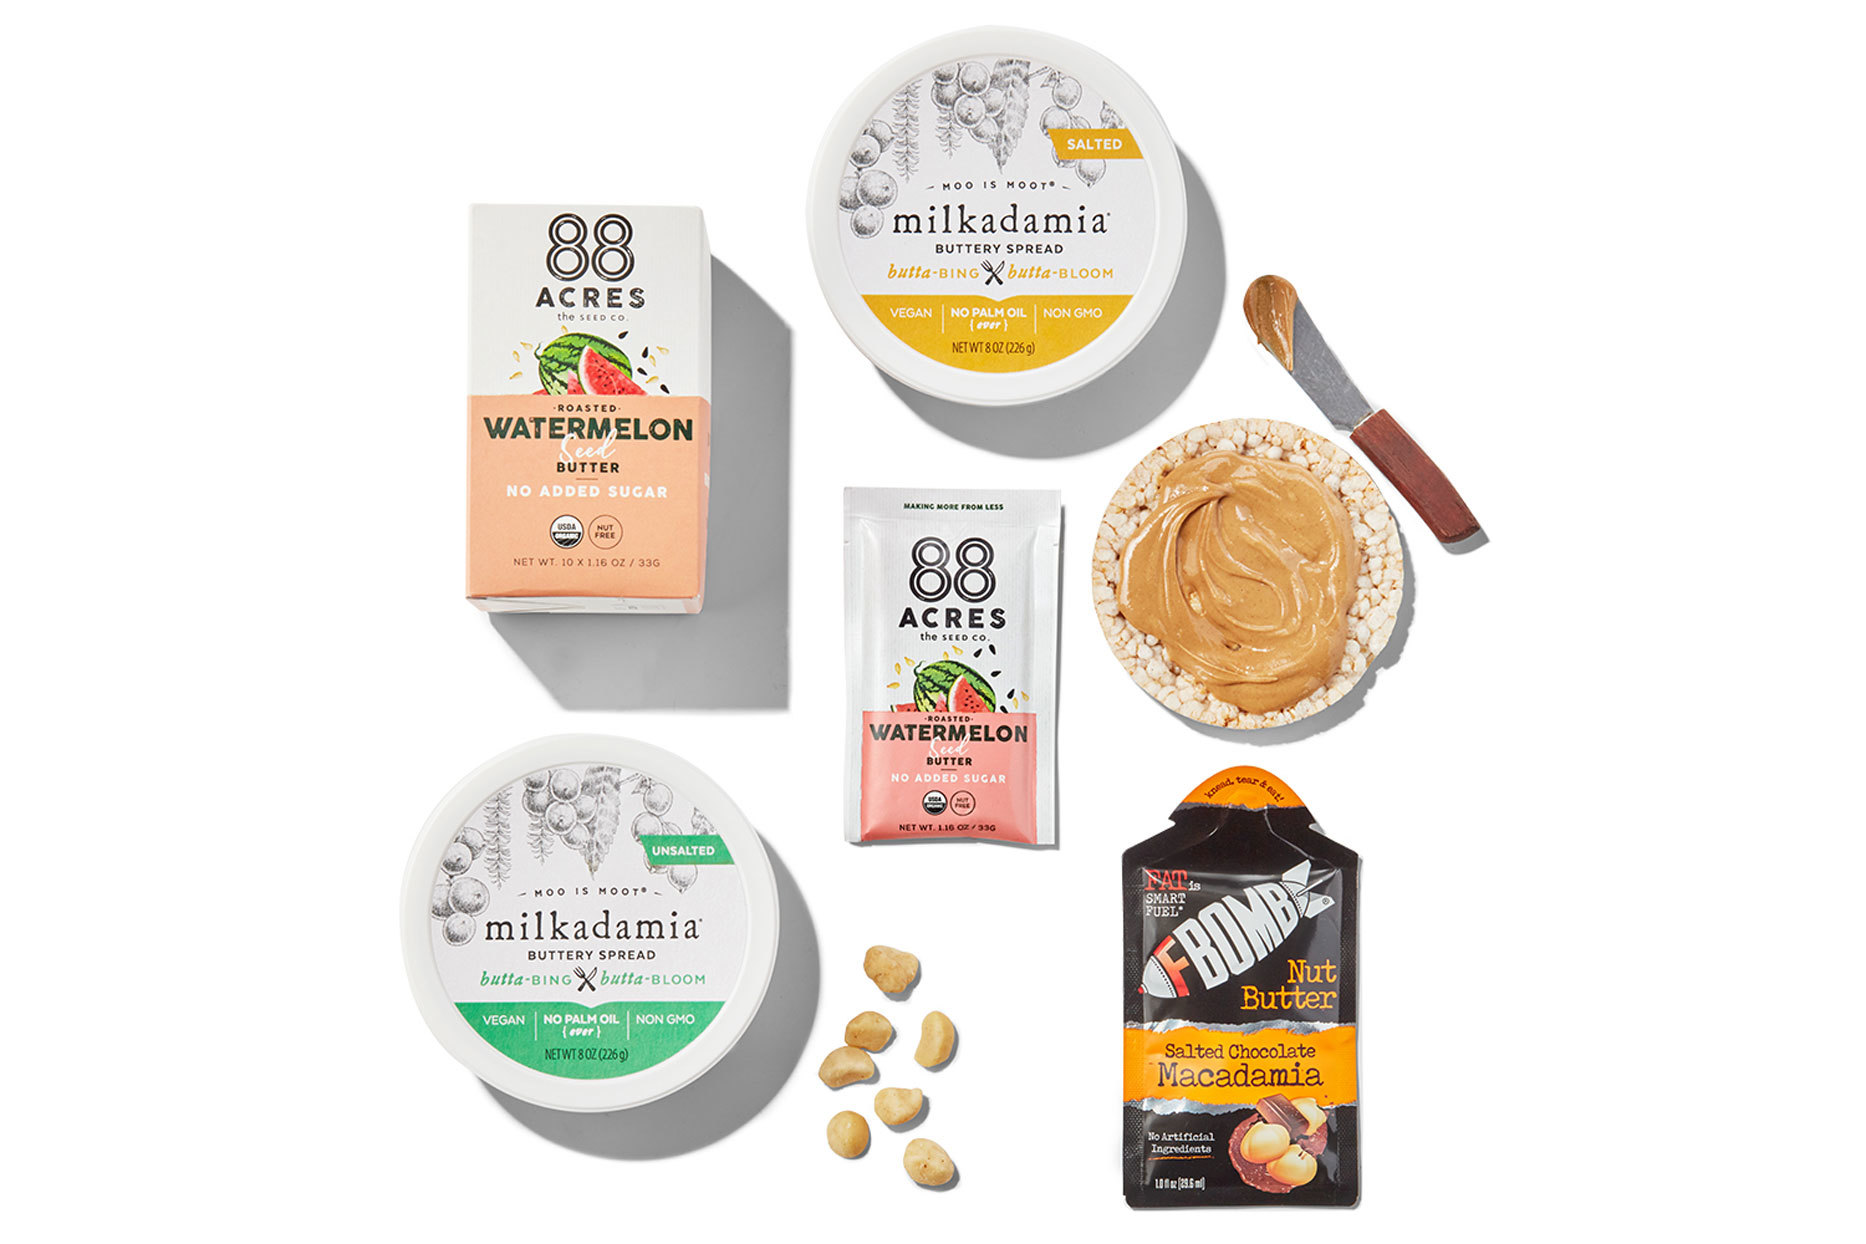 Various flavored butters and spread products